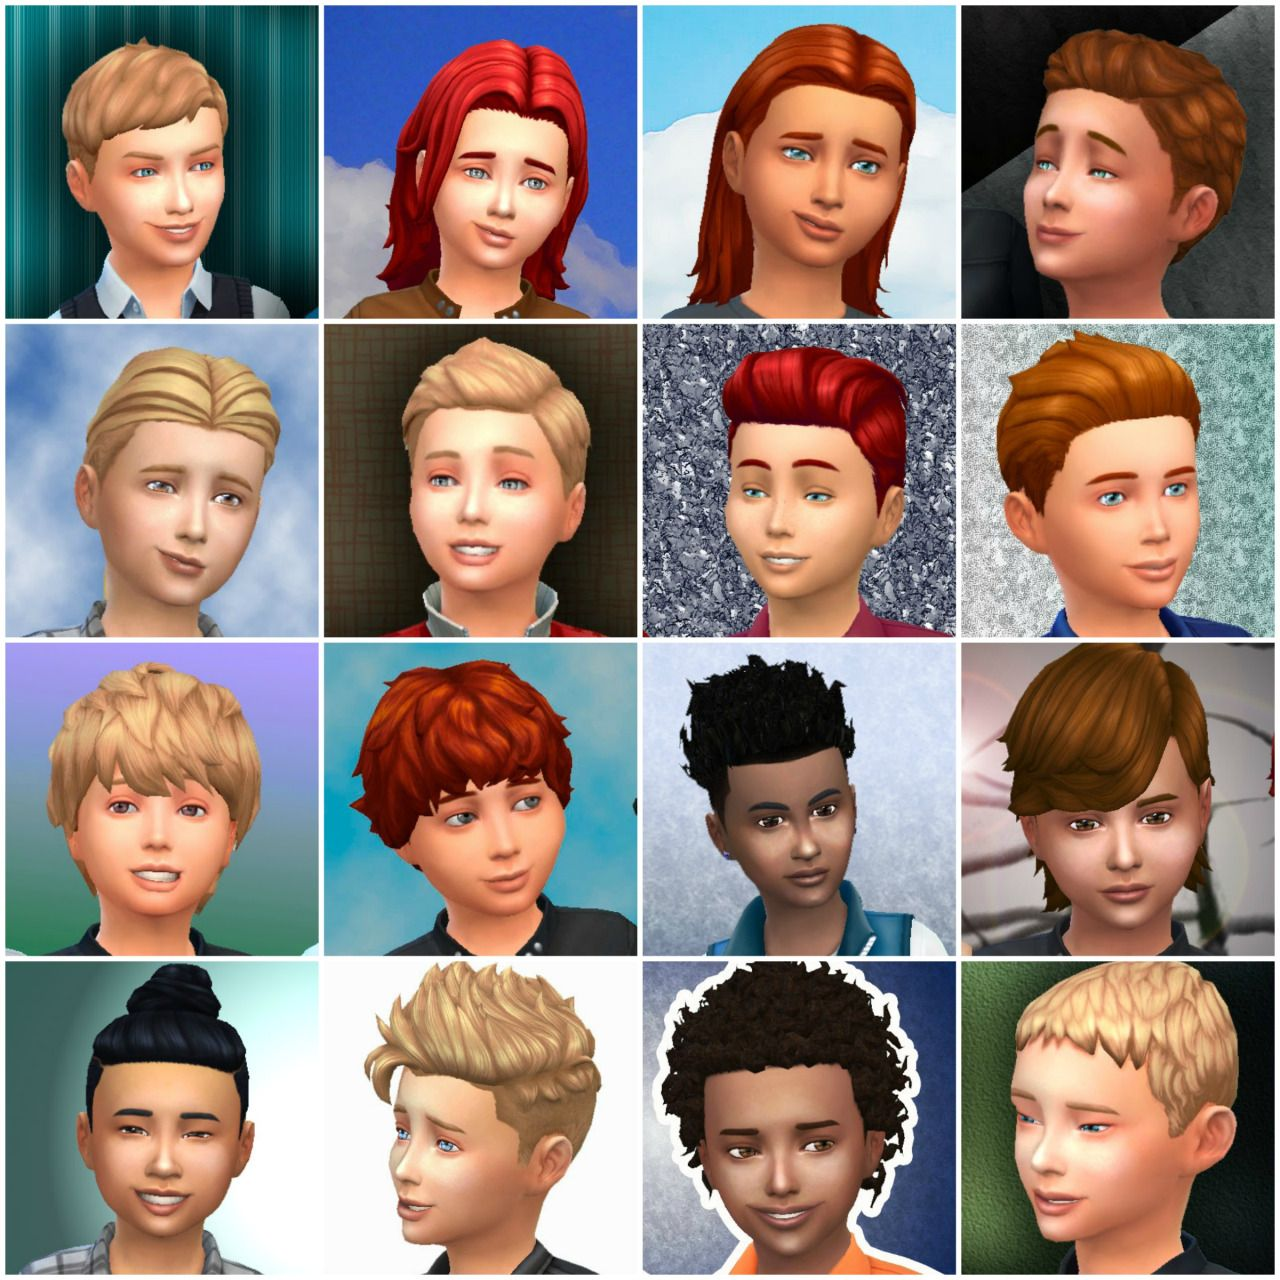 Sims 4 mods traits downloads 187 sims 4 updates 187 page 58 of 100 - Boys Hairstyles By Mystufforigin The Sims 4 Parted Flat For Boyslong Wavy Swept For Kidsmed Center Part Conversionwavy Loose For Boyspony Tail C